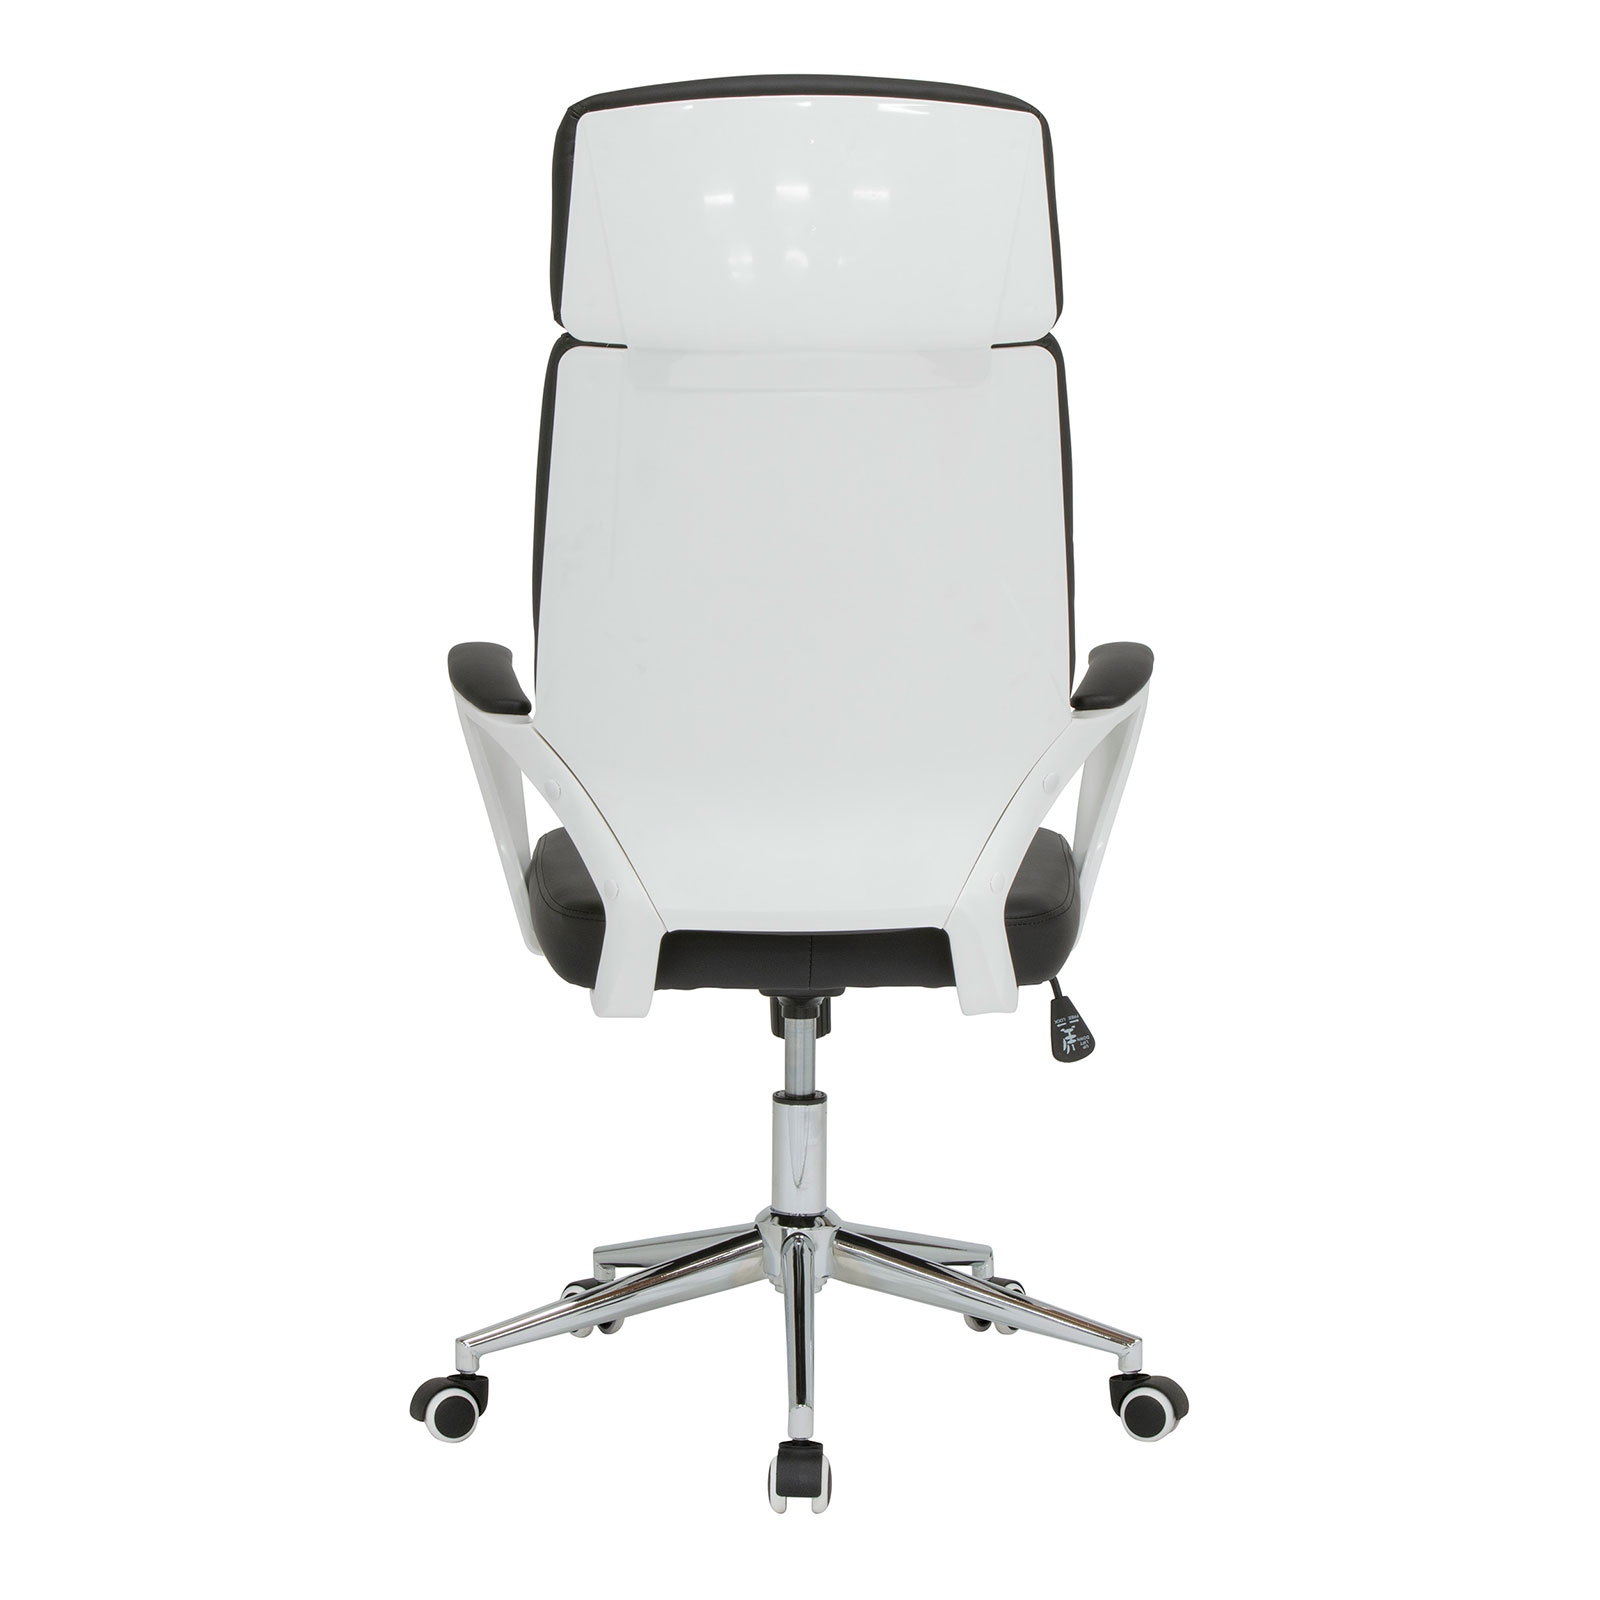 10662-High-Back-Deluxe-Managers-Chair-rear